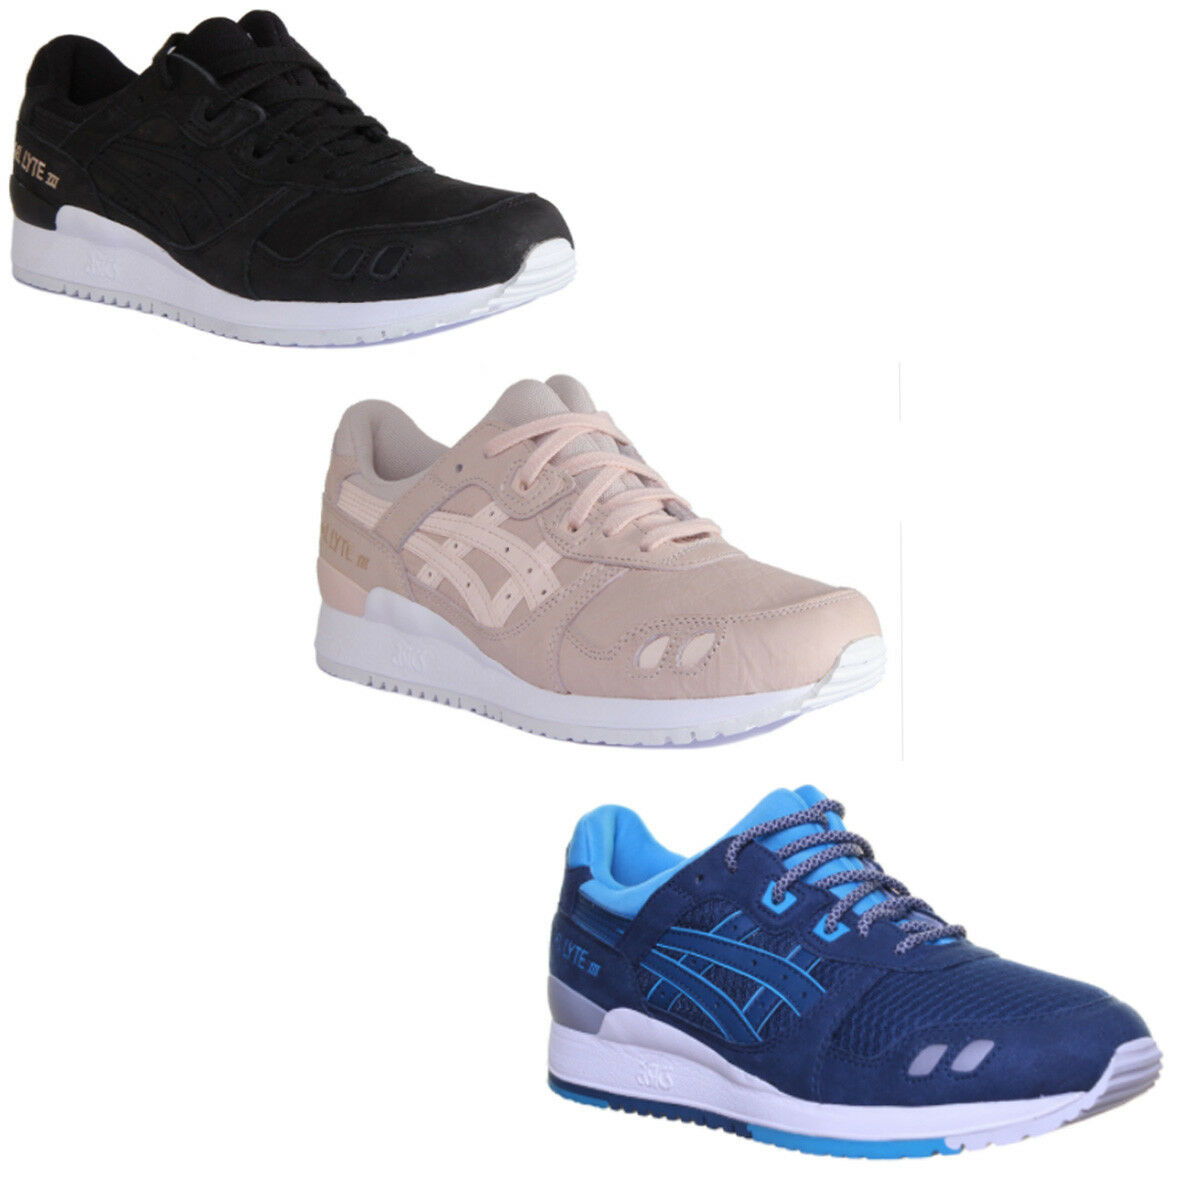 Asics Gel-Lyte Iii Unisex Suede Leather Trainers